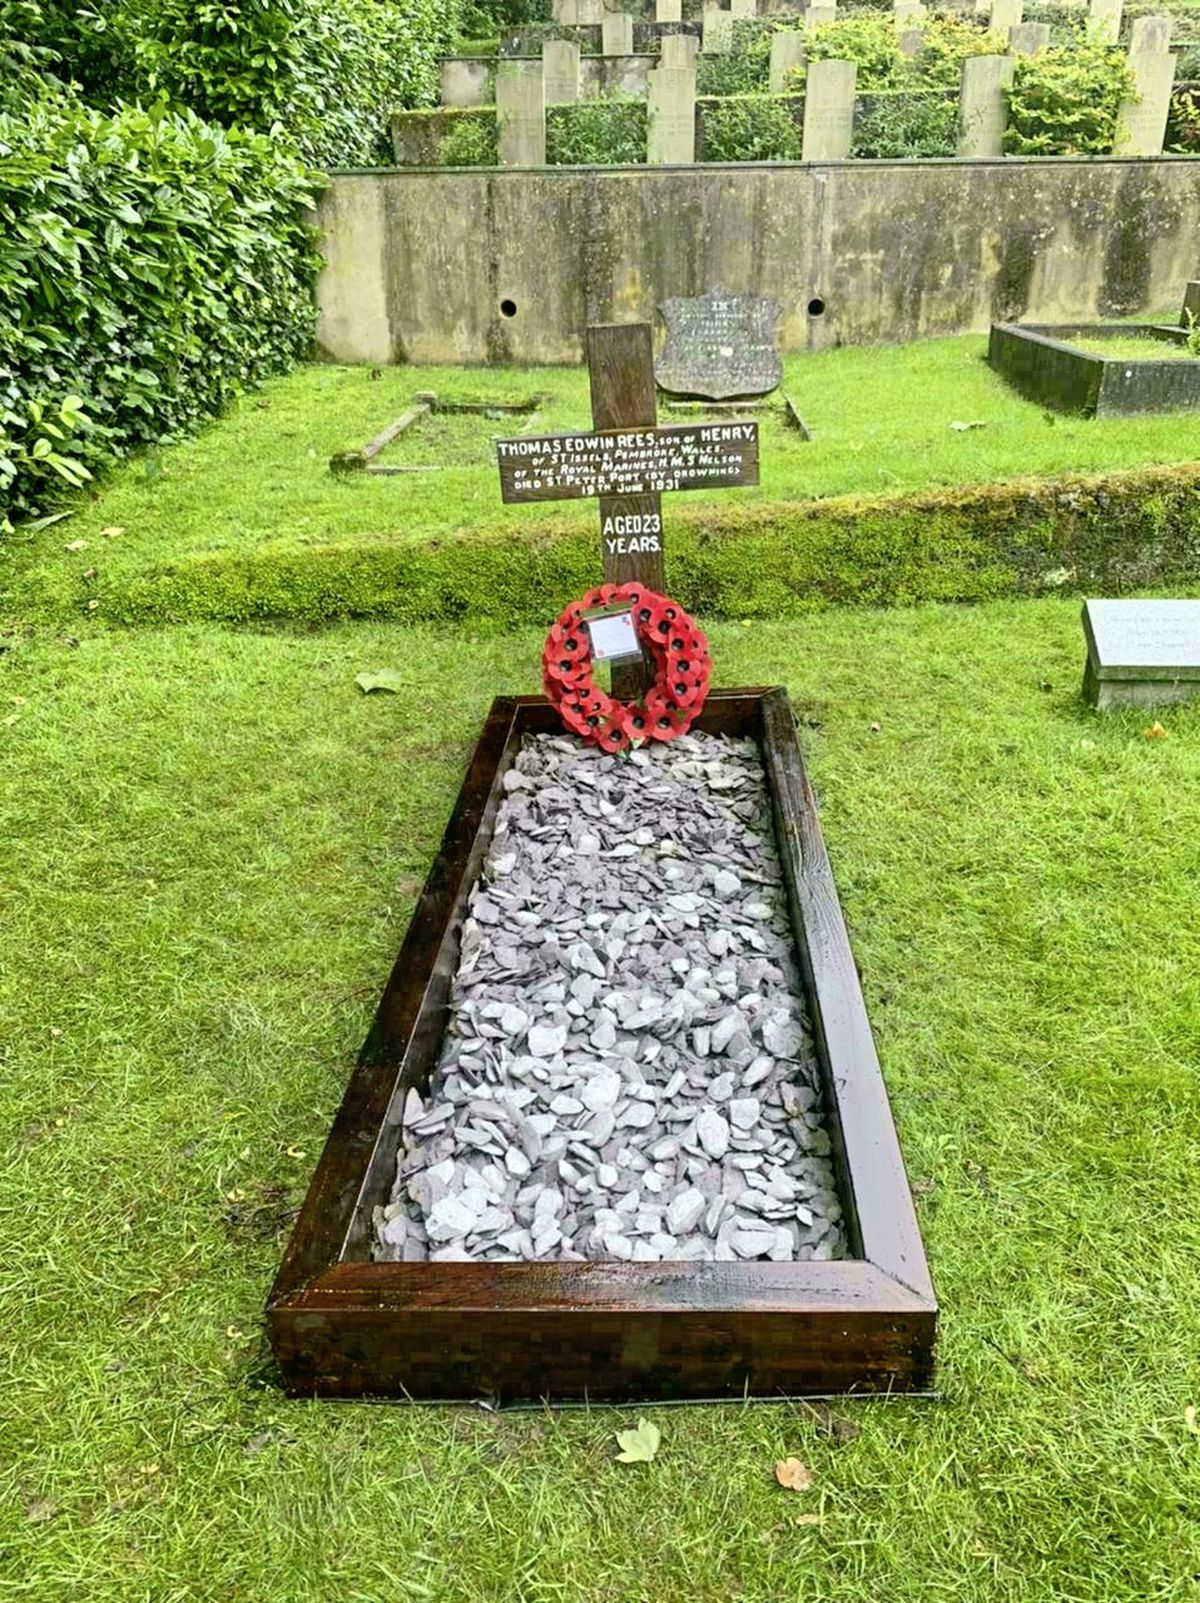 The inscription on the cross has been repainted and the grave marked with blue slate. A poppy wreath was laid during Saturday's ceremony.